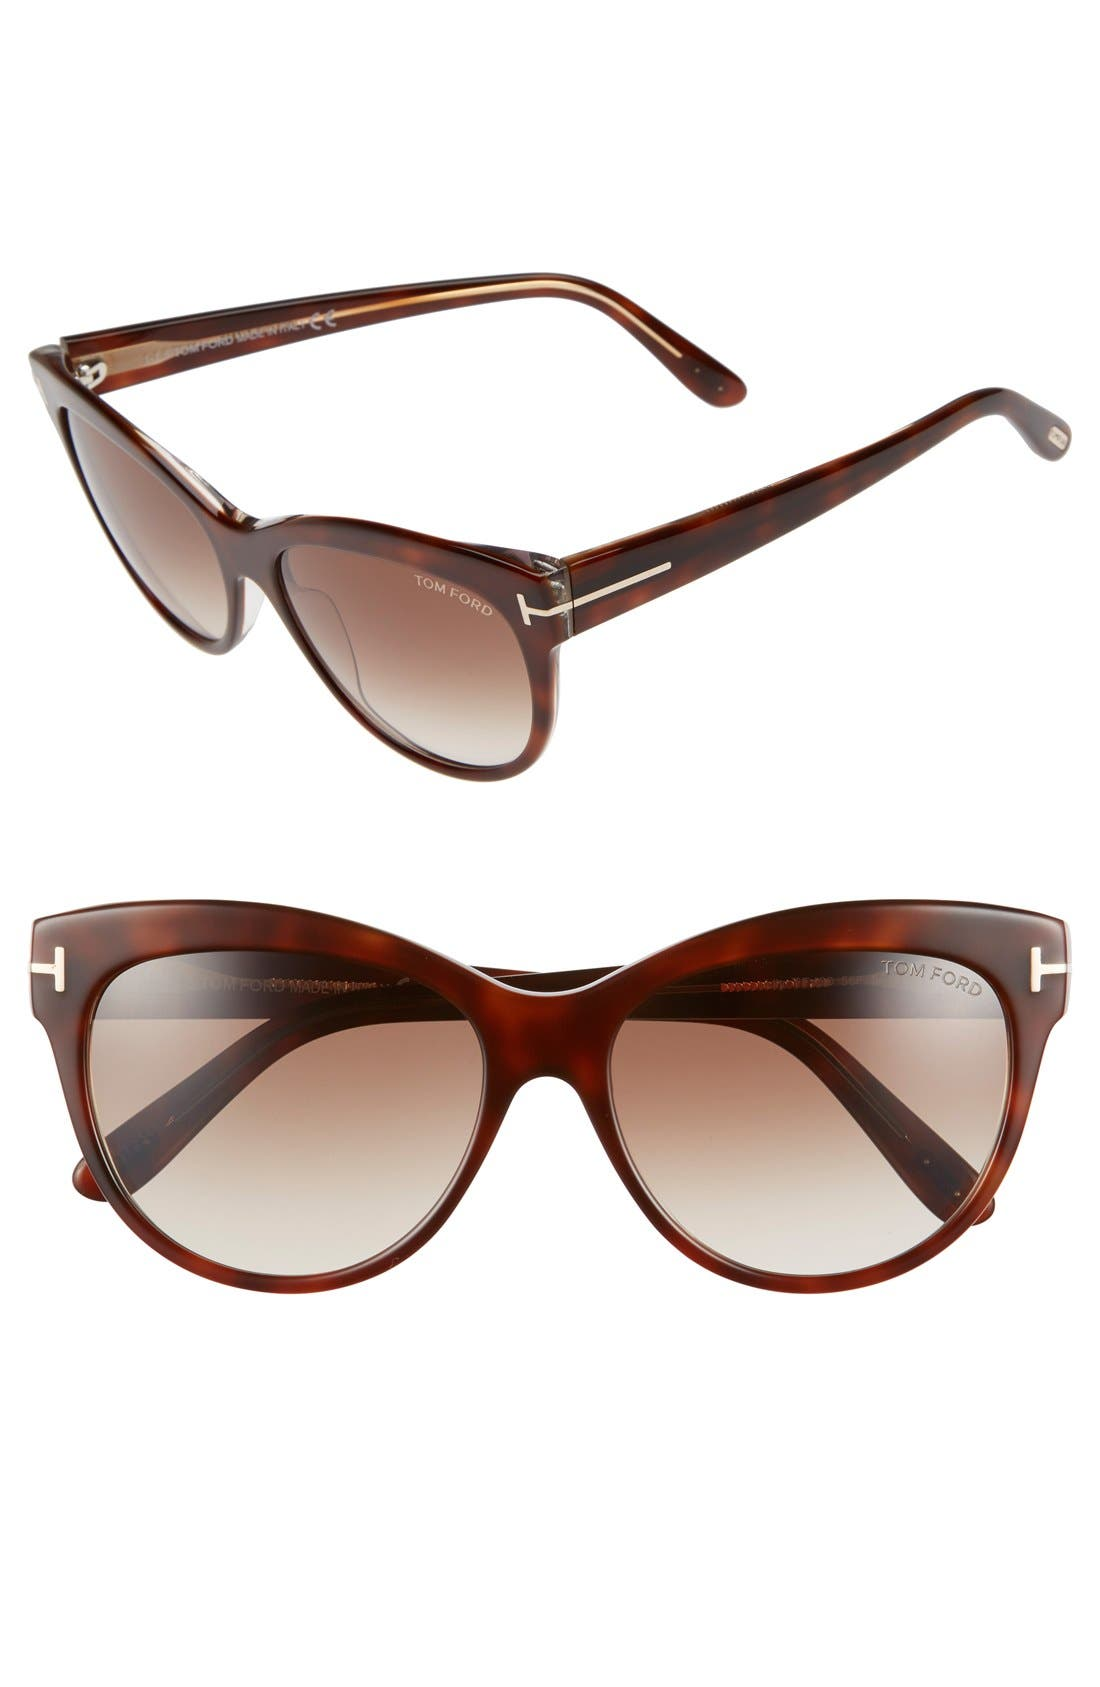 Main Image - Tom Ford 'Lily' 56mm Cat Eye Sunglasses